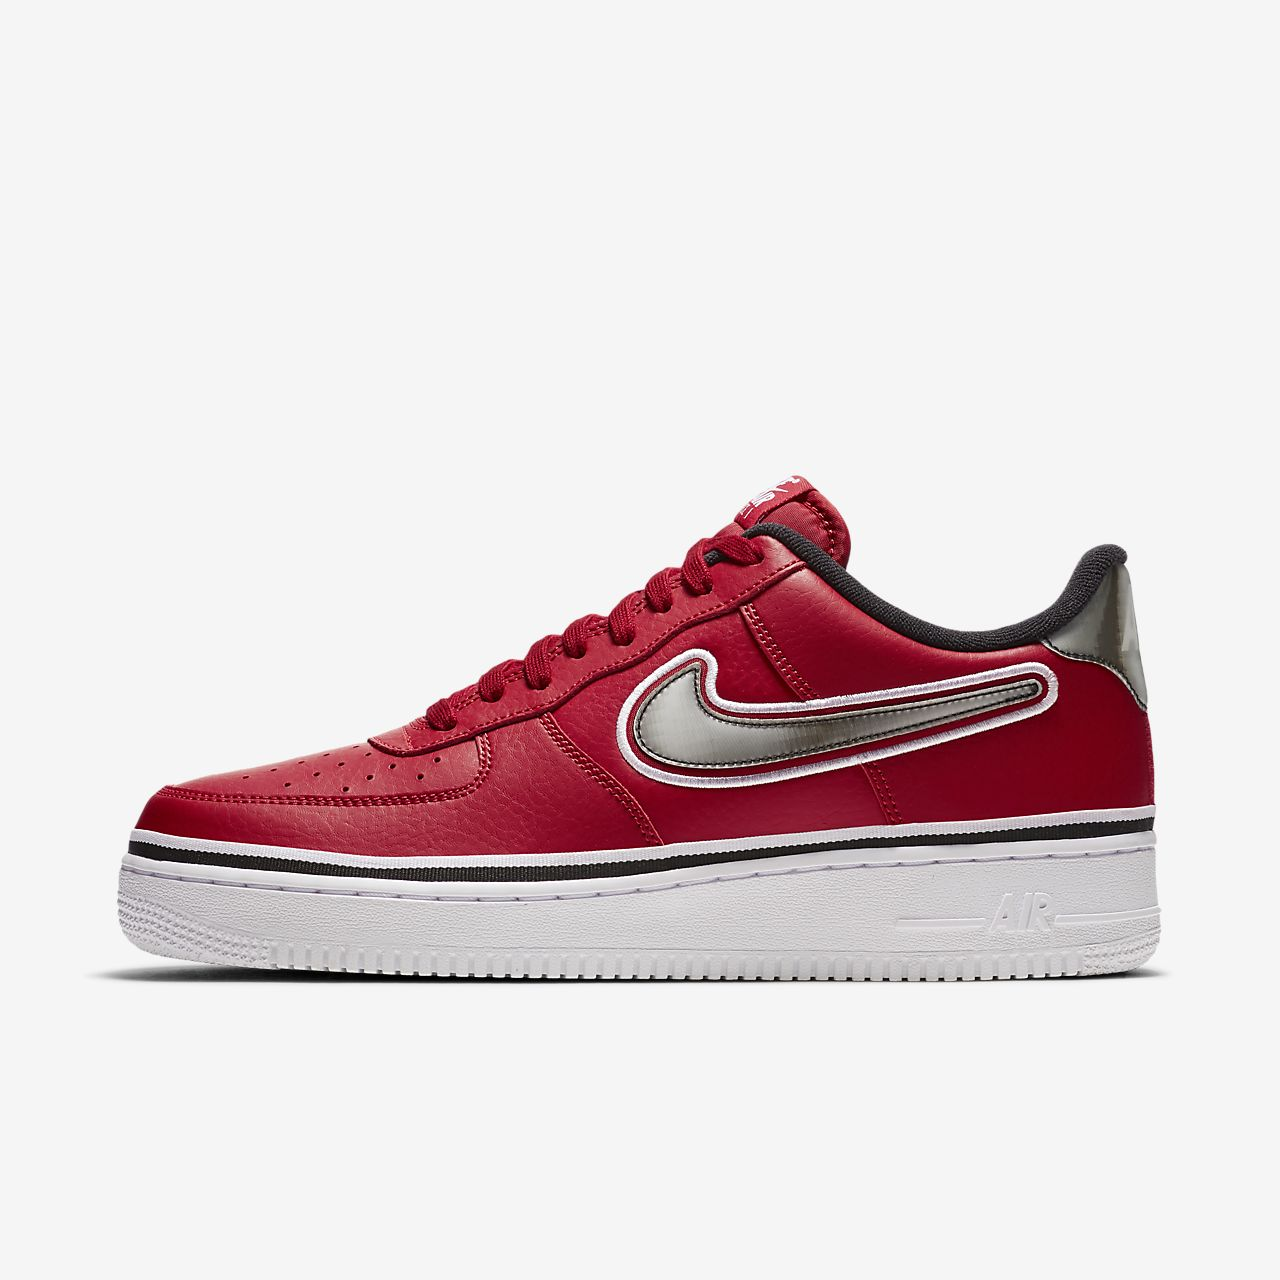 the best attitude b7885 492d3 ... Calzado para hombre Nike Air Force 1 NBA Low (Chicago Bulls)